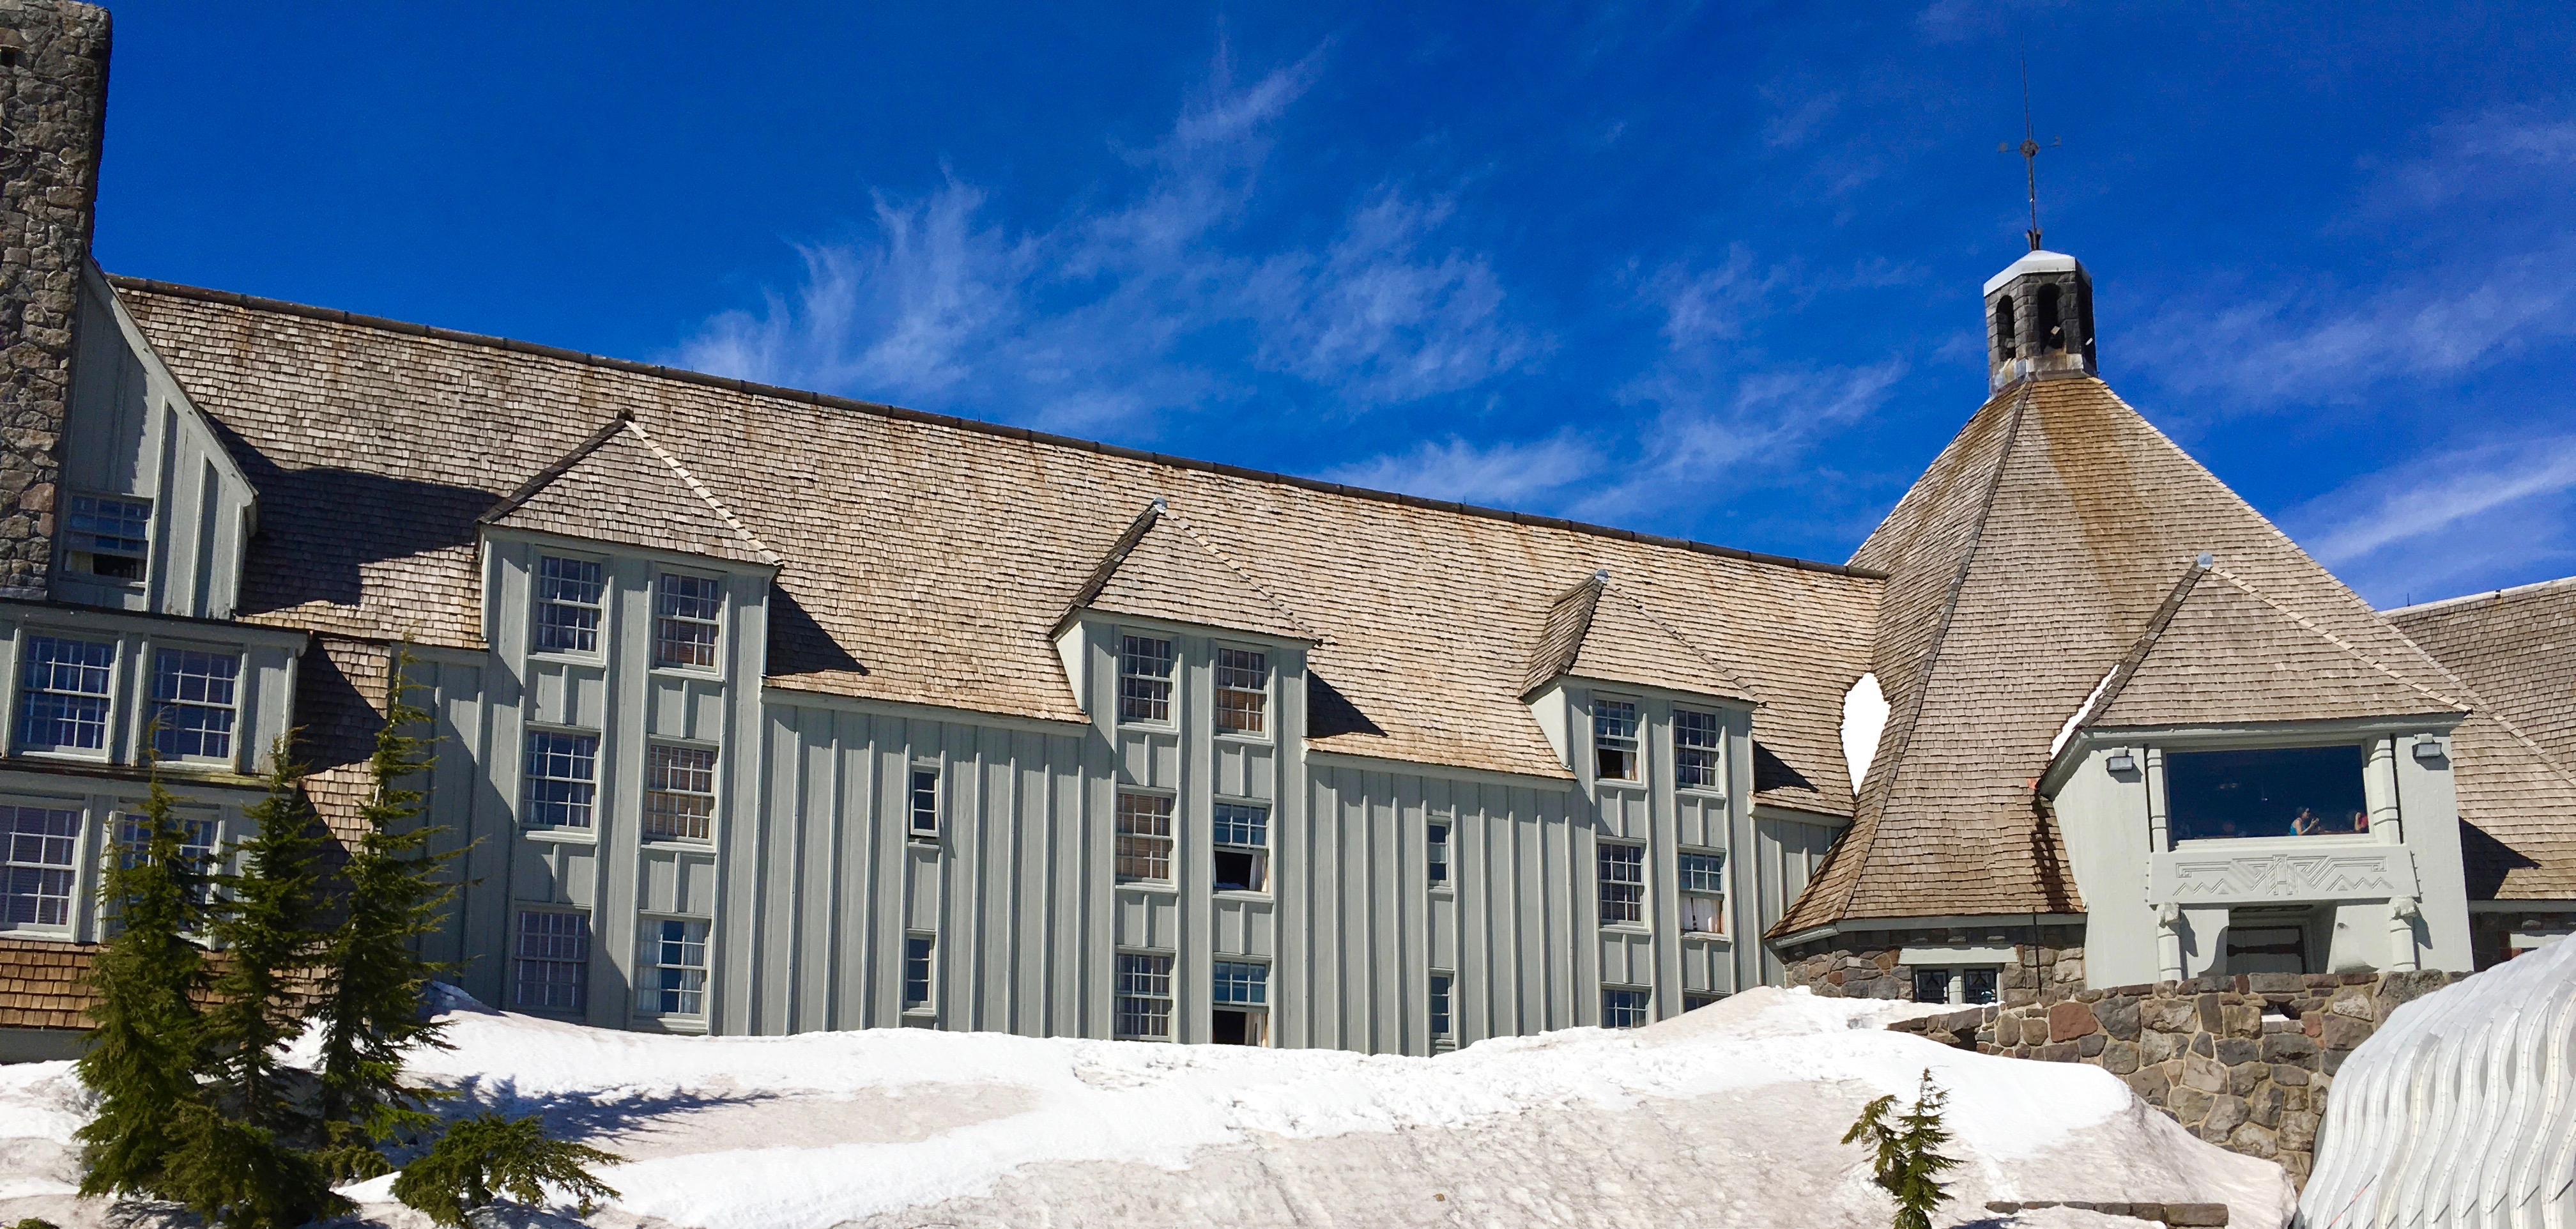 The Overlook Hotel, a.k.a., The Timberline Lodge.jpg